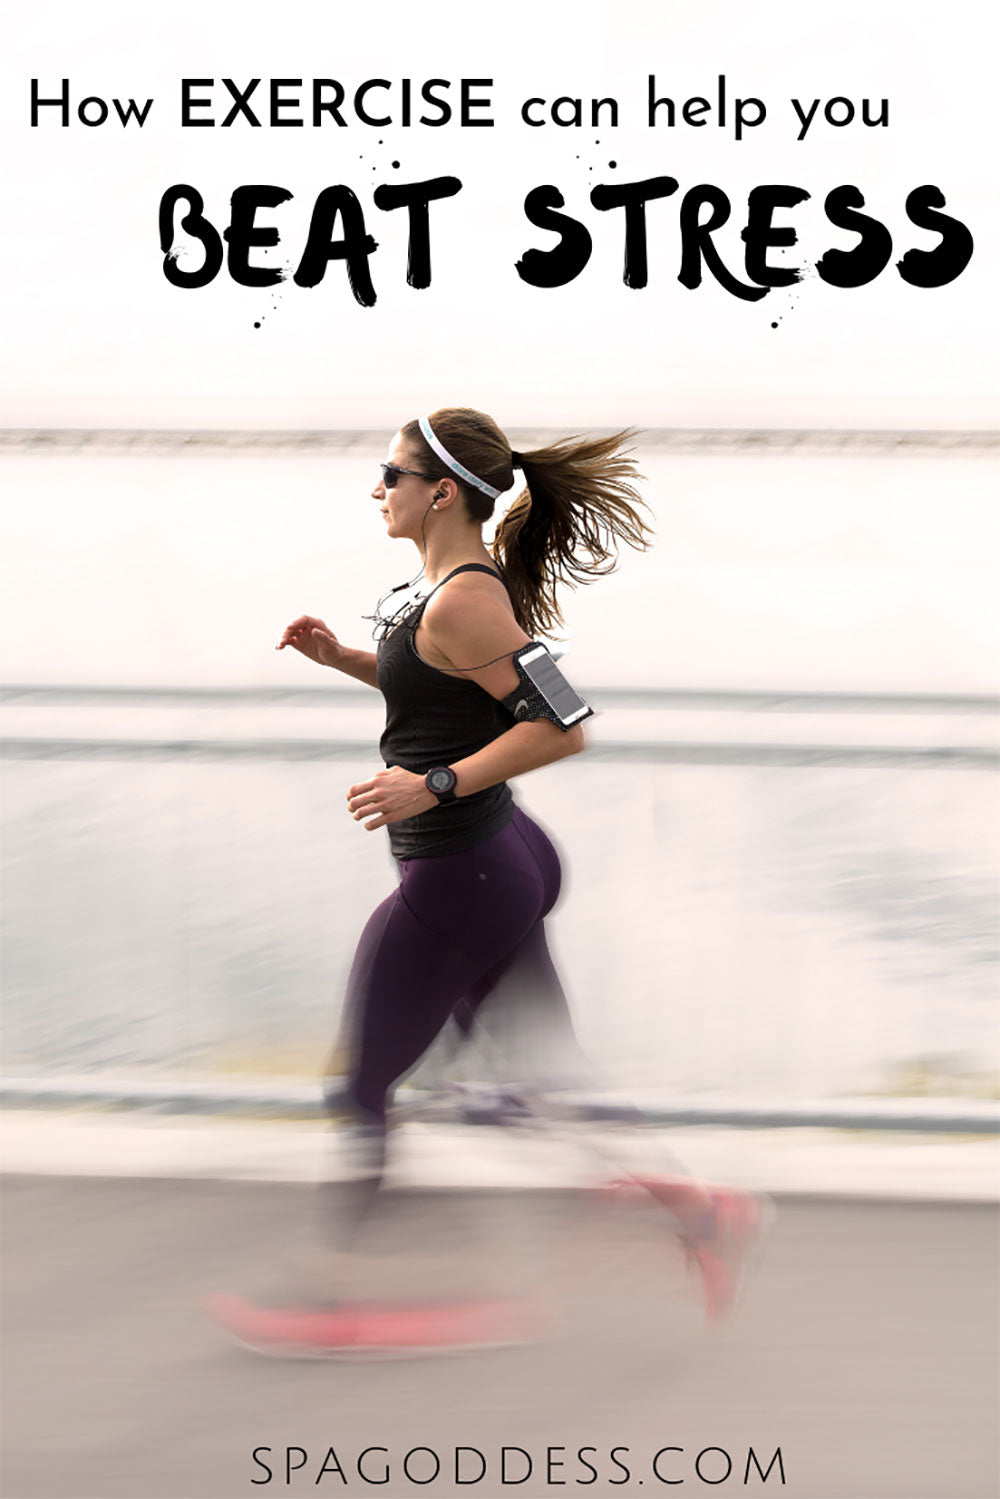 How exercise can help you beat stress